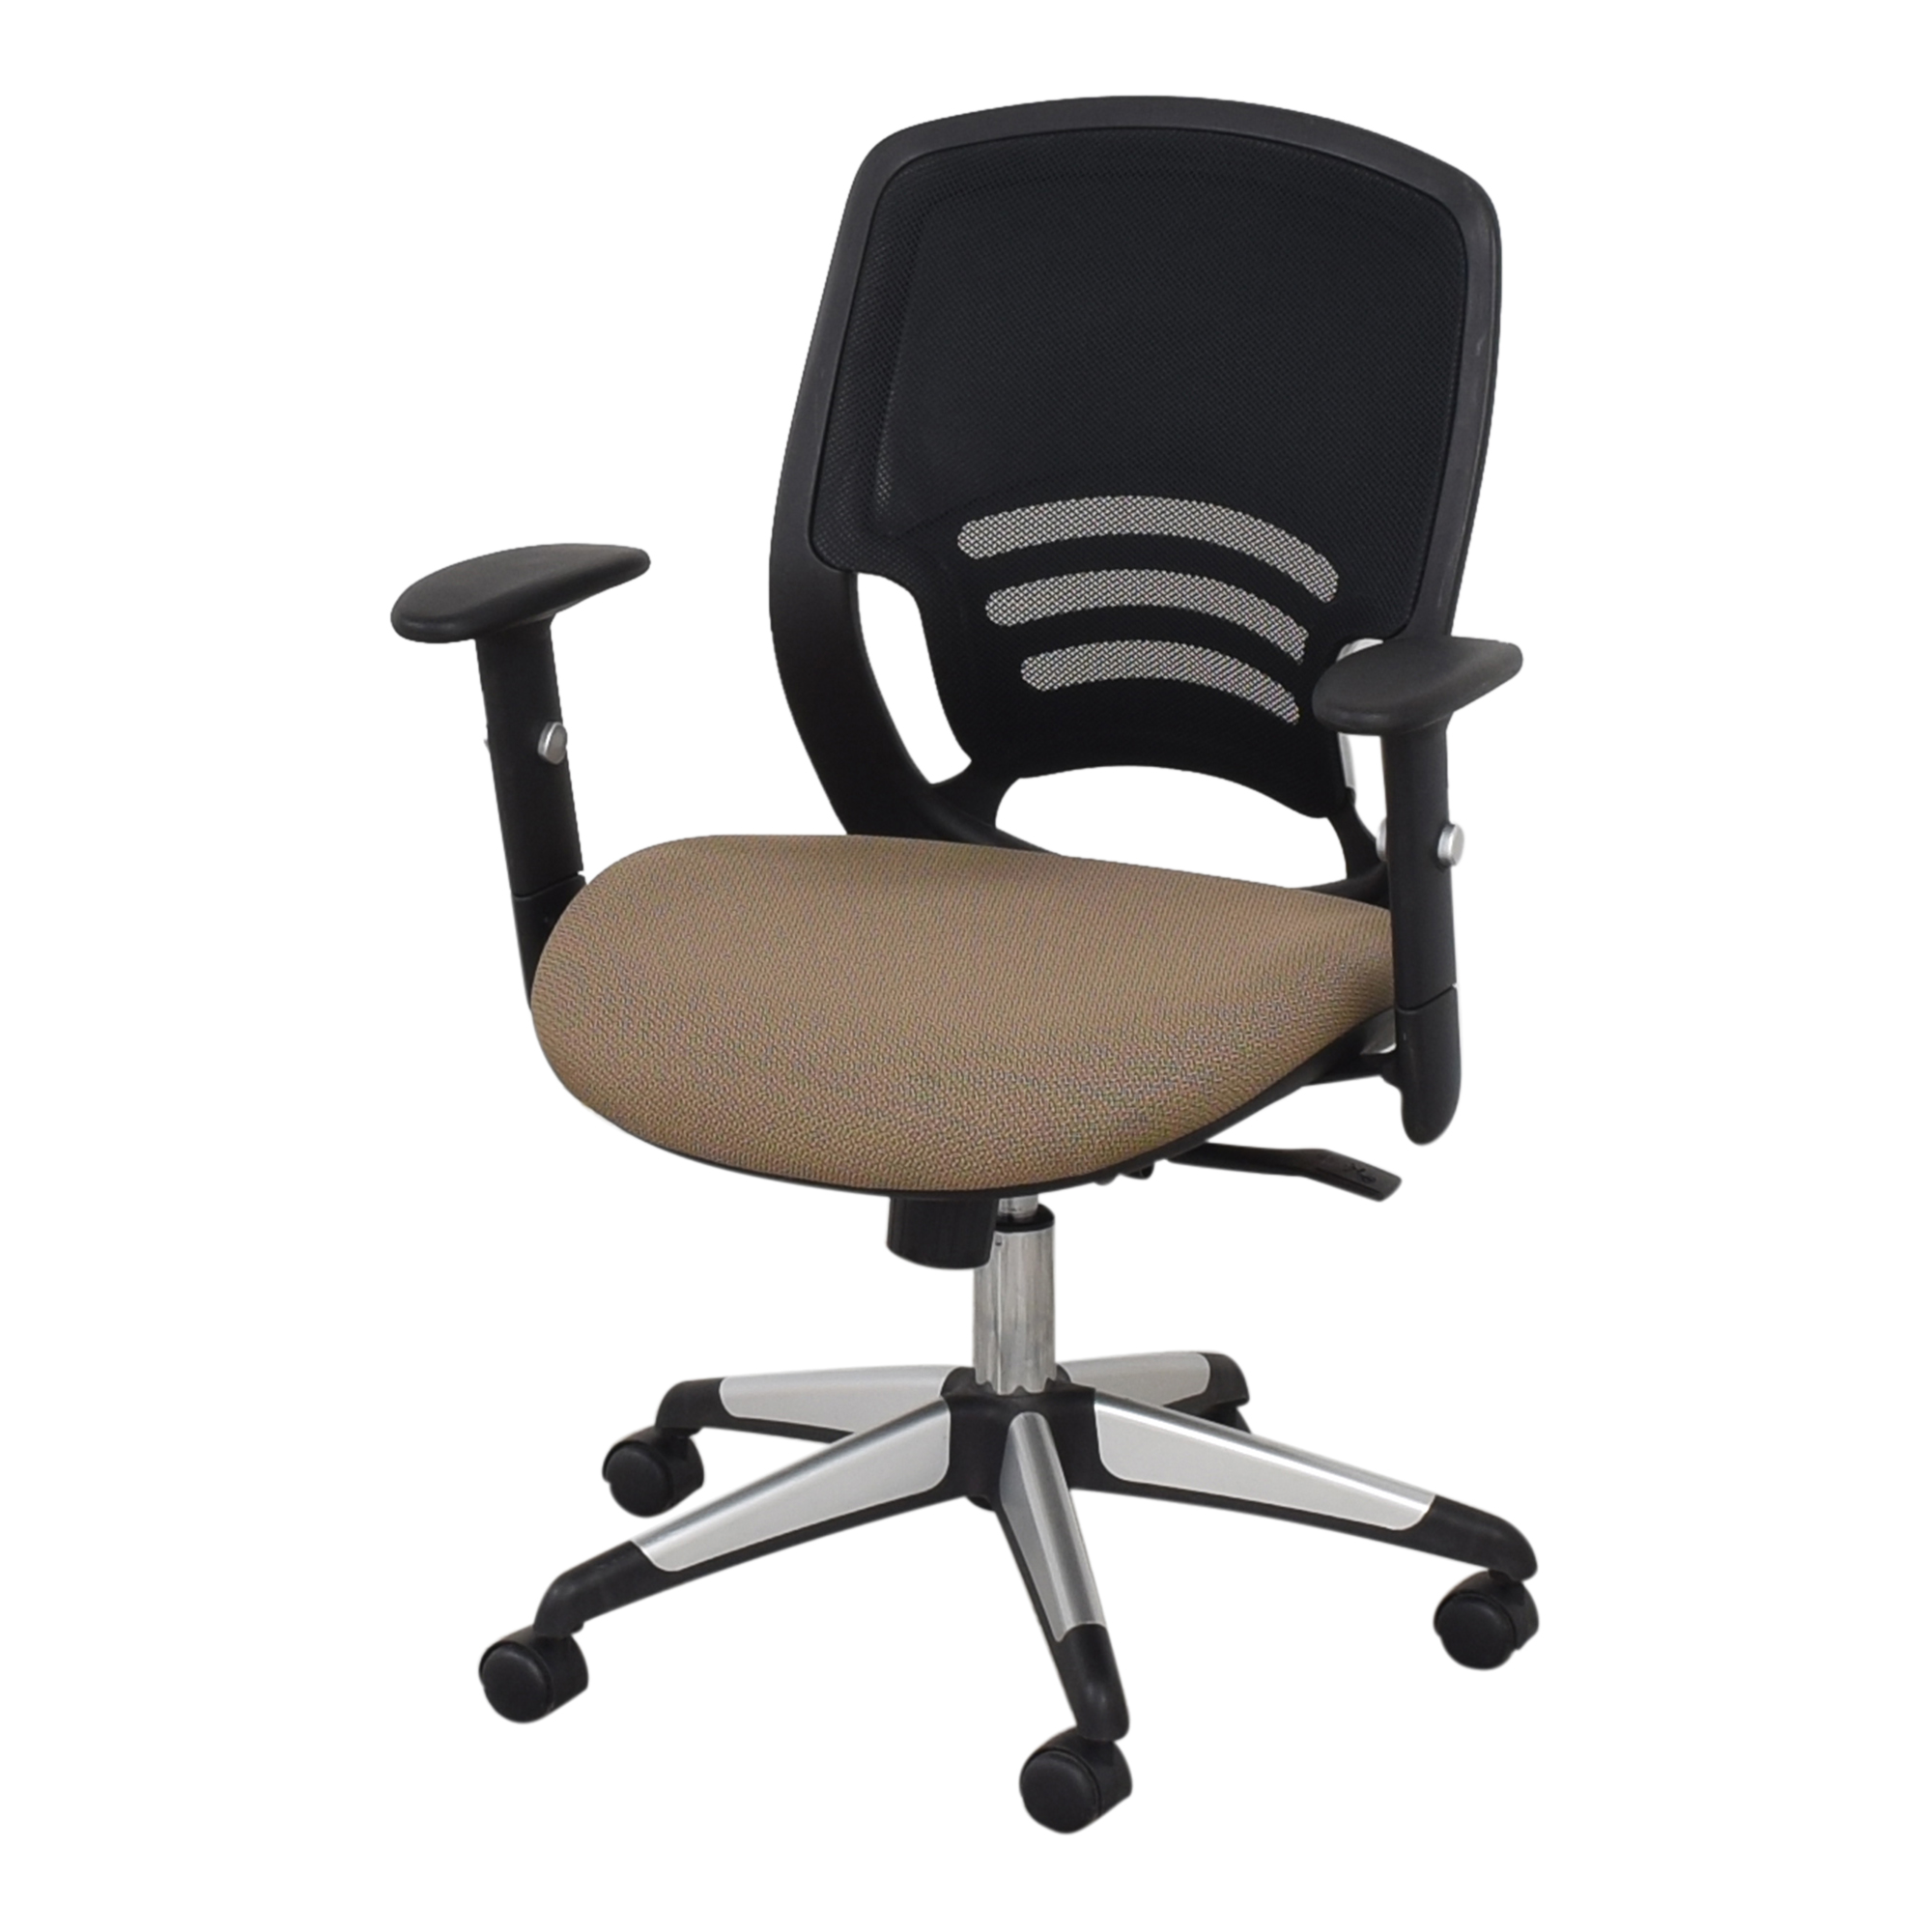 Offices to Go Offices to Go Low Mesh Back Swivel Chair